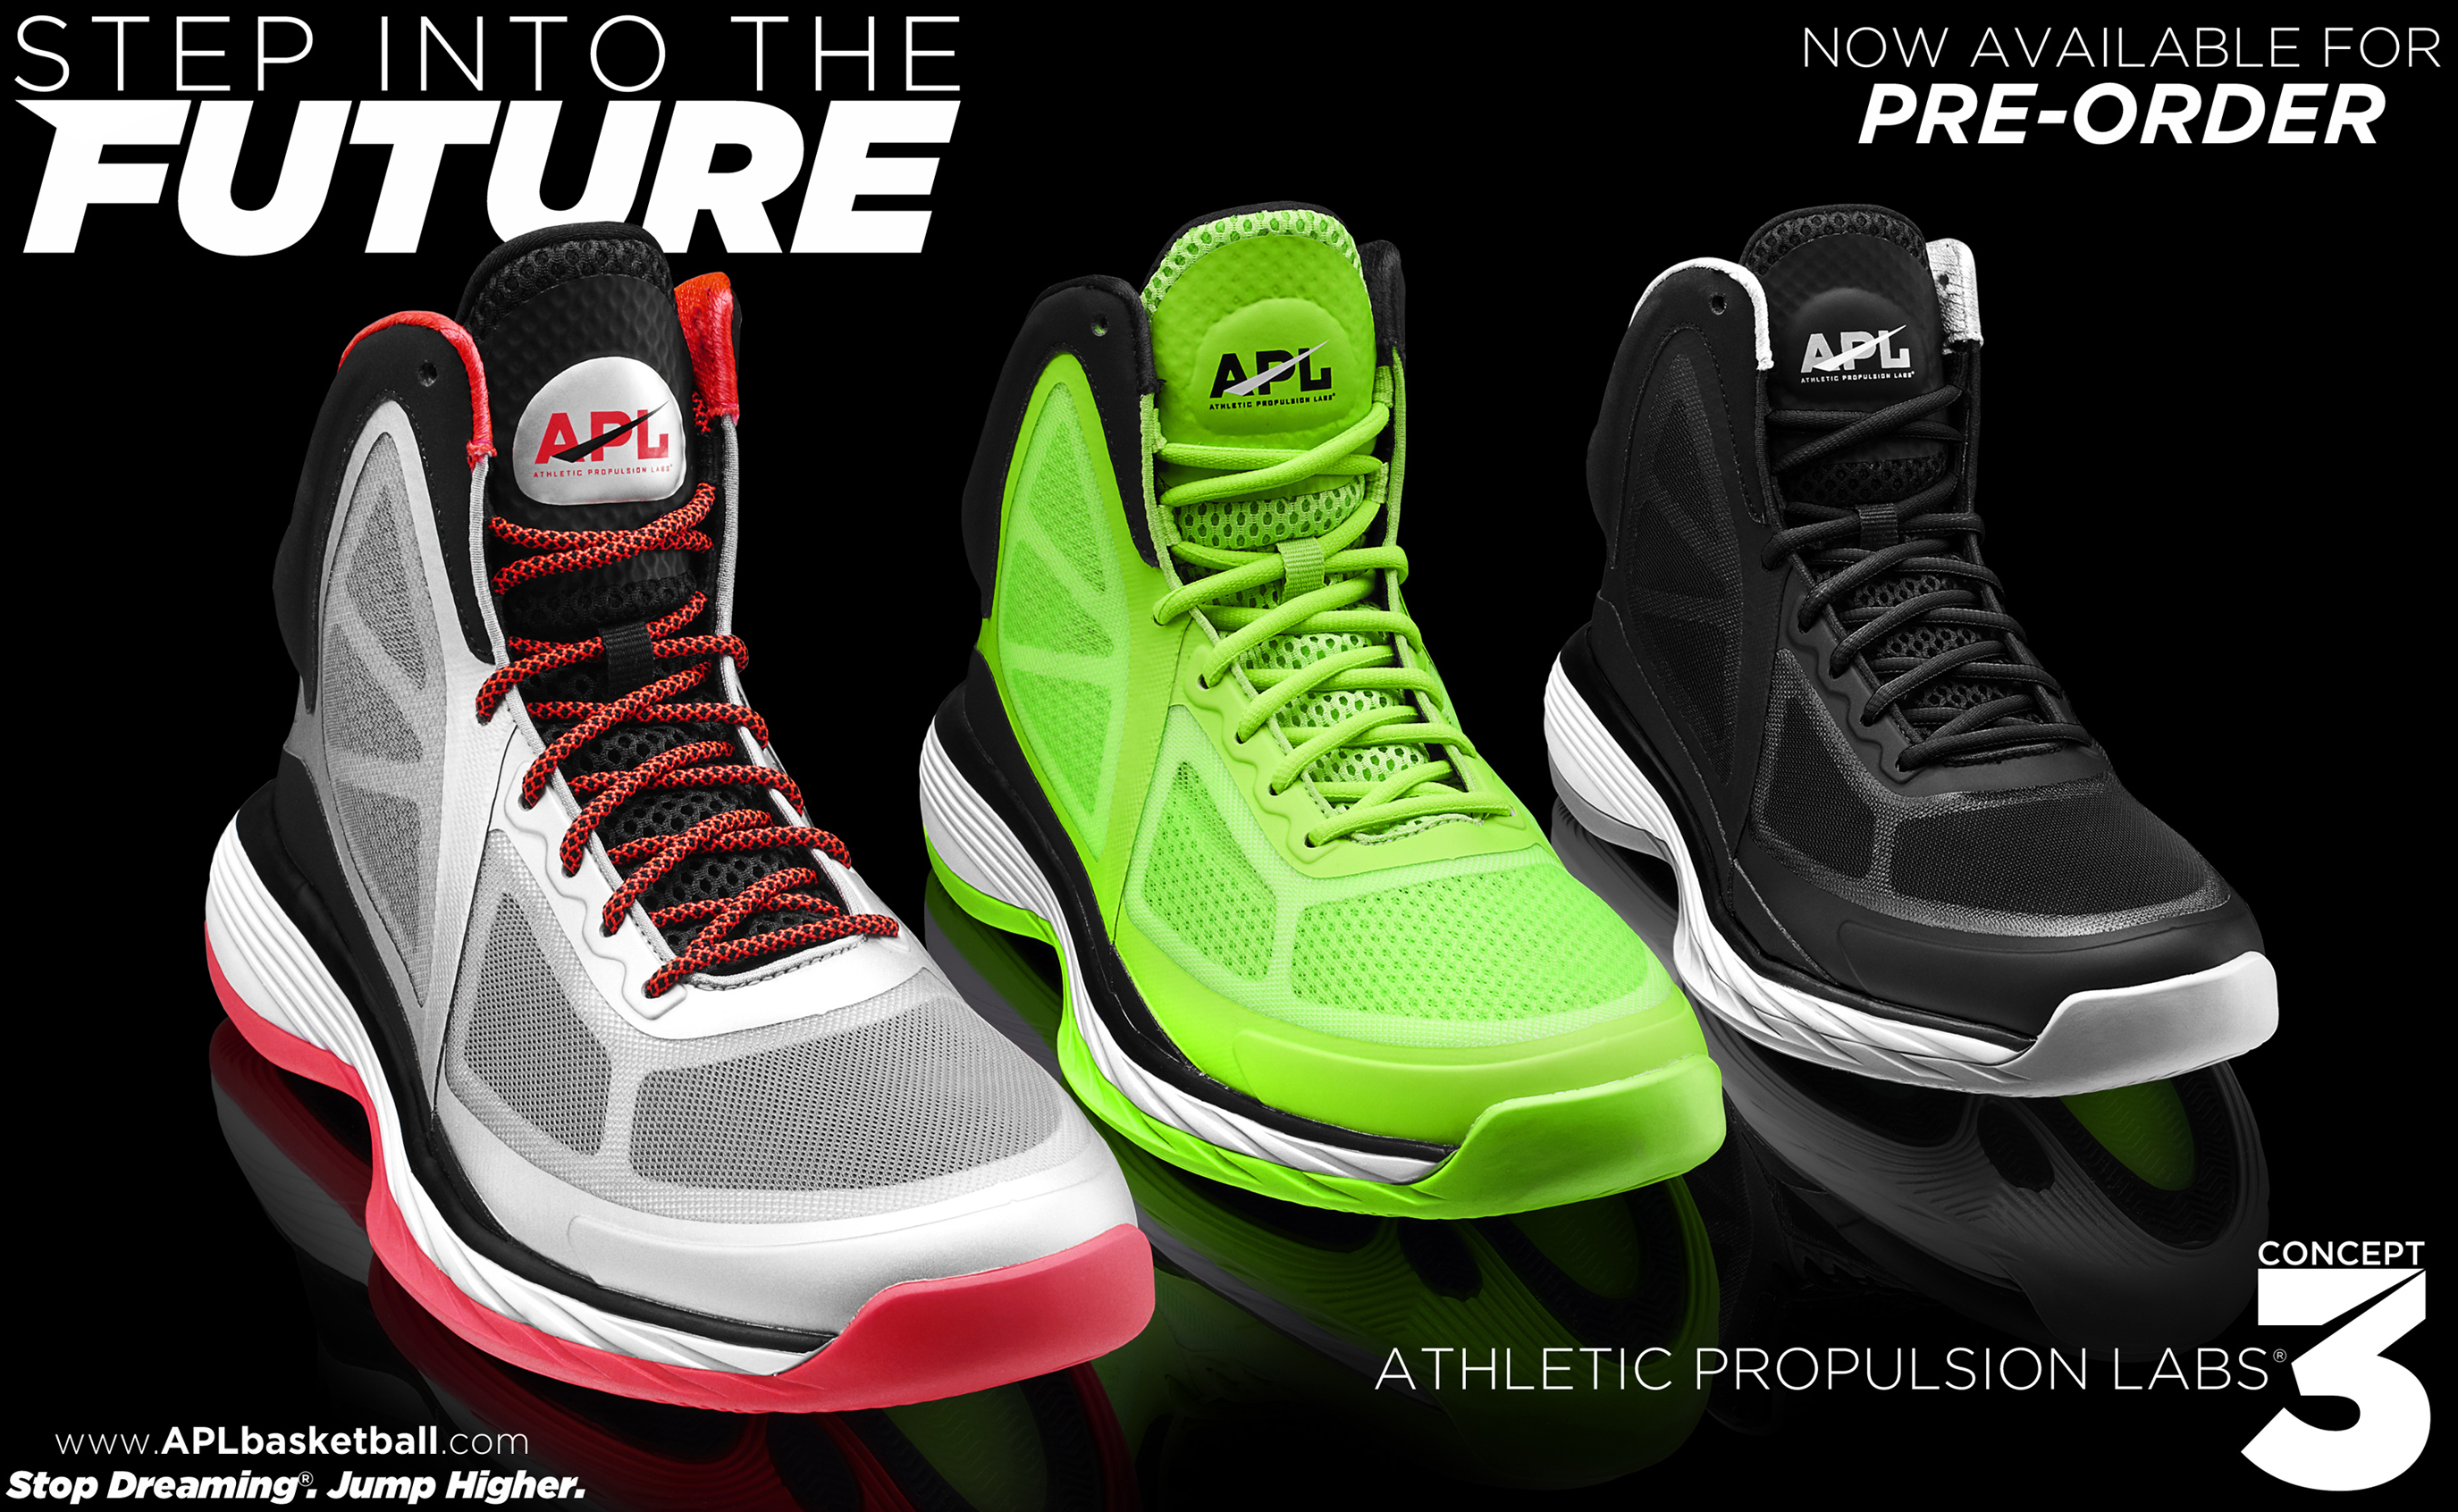 low priced 4bc99 b6f94 Athletic Propulsion Labs Steps IntoThe Future With Launch of APL Concept 3  Basketball ShoeAthletic Propulsion Labs Steps IntoThe Future With Launch of  APL ...